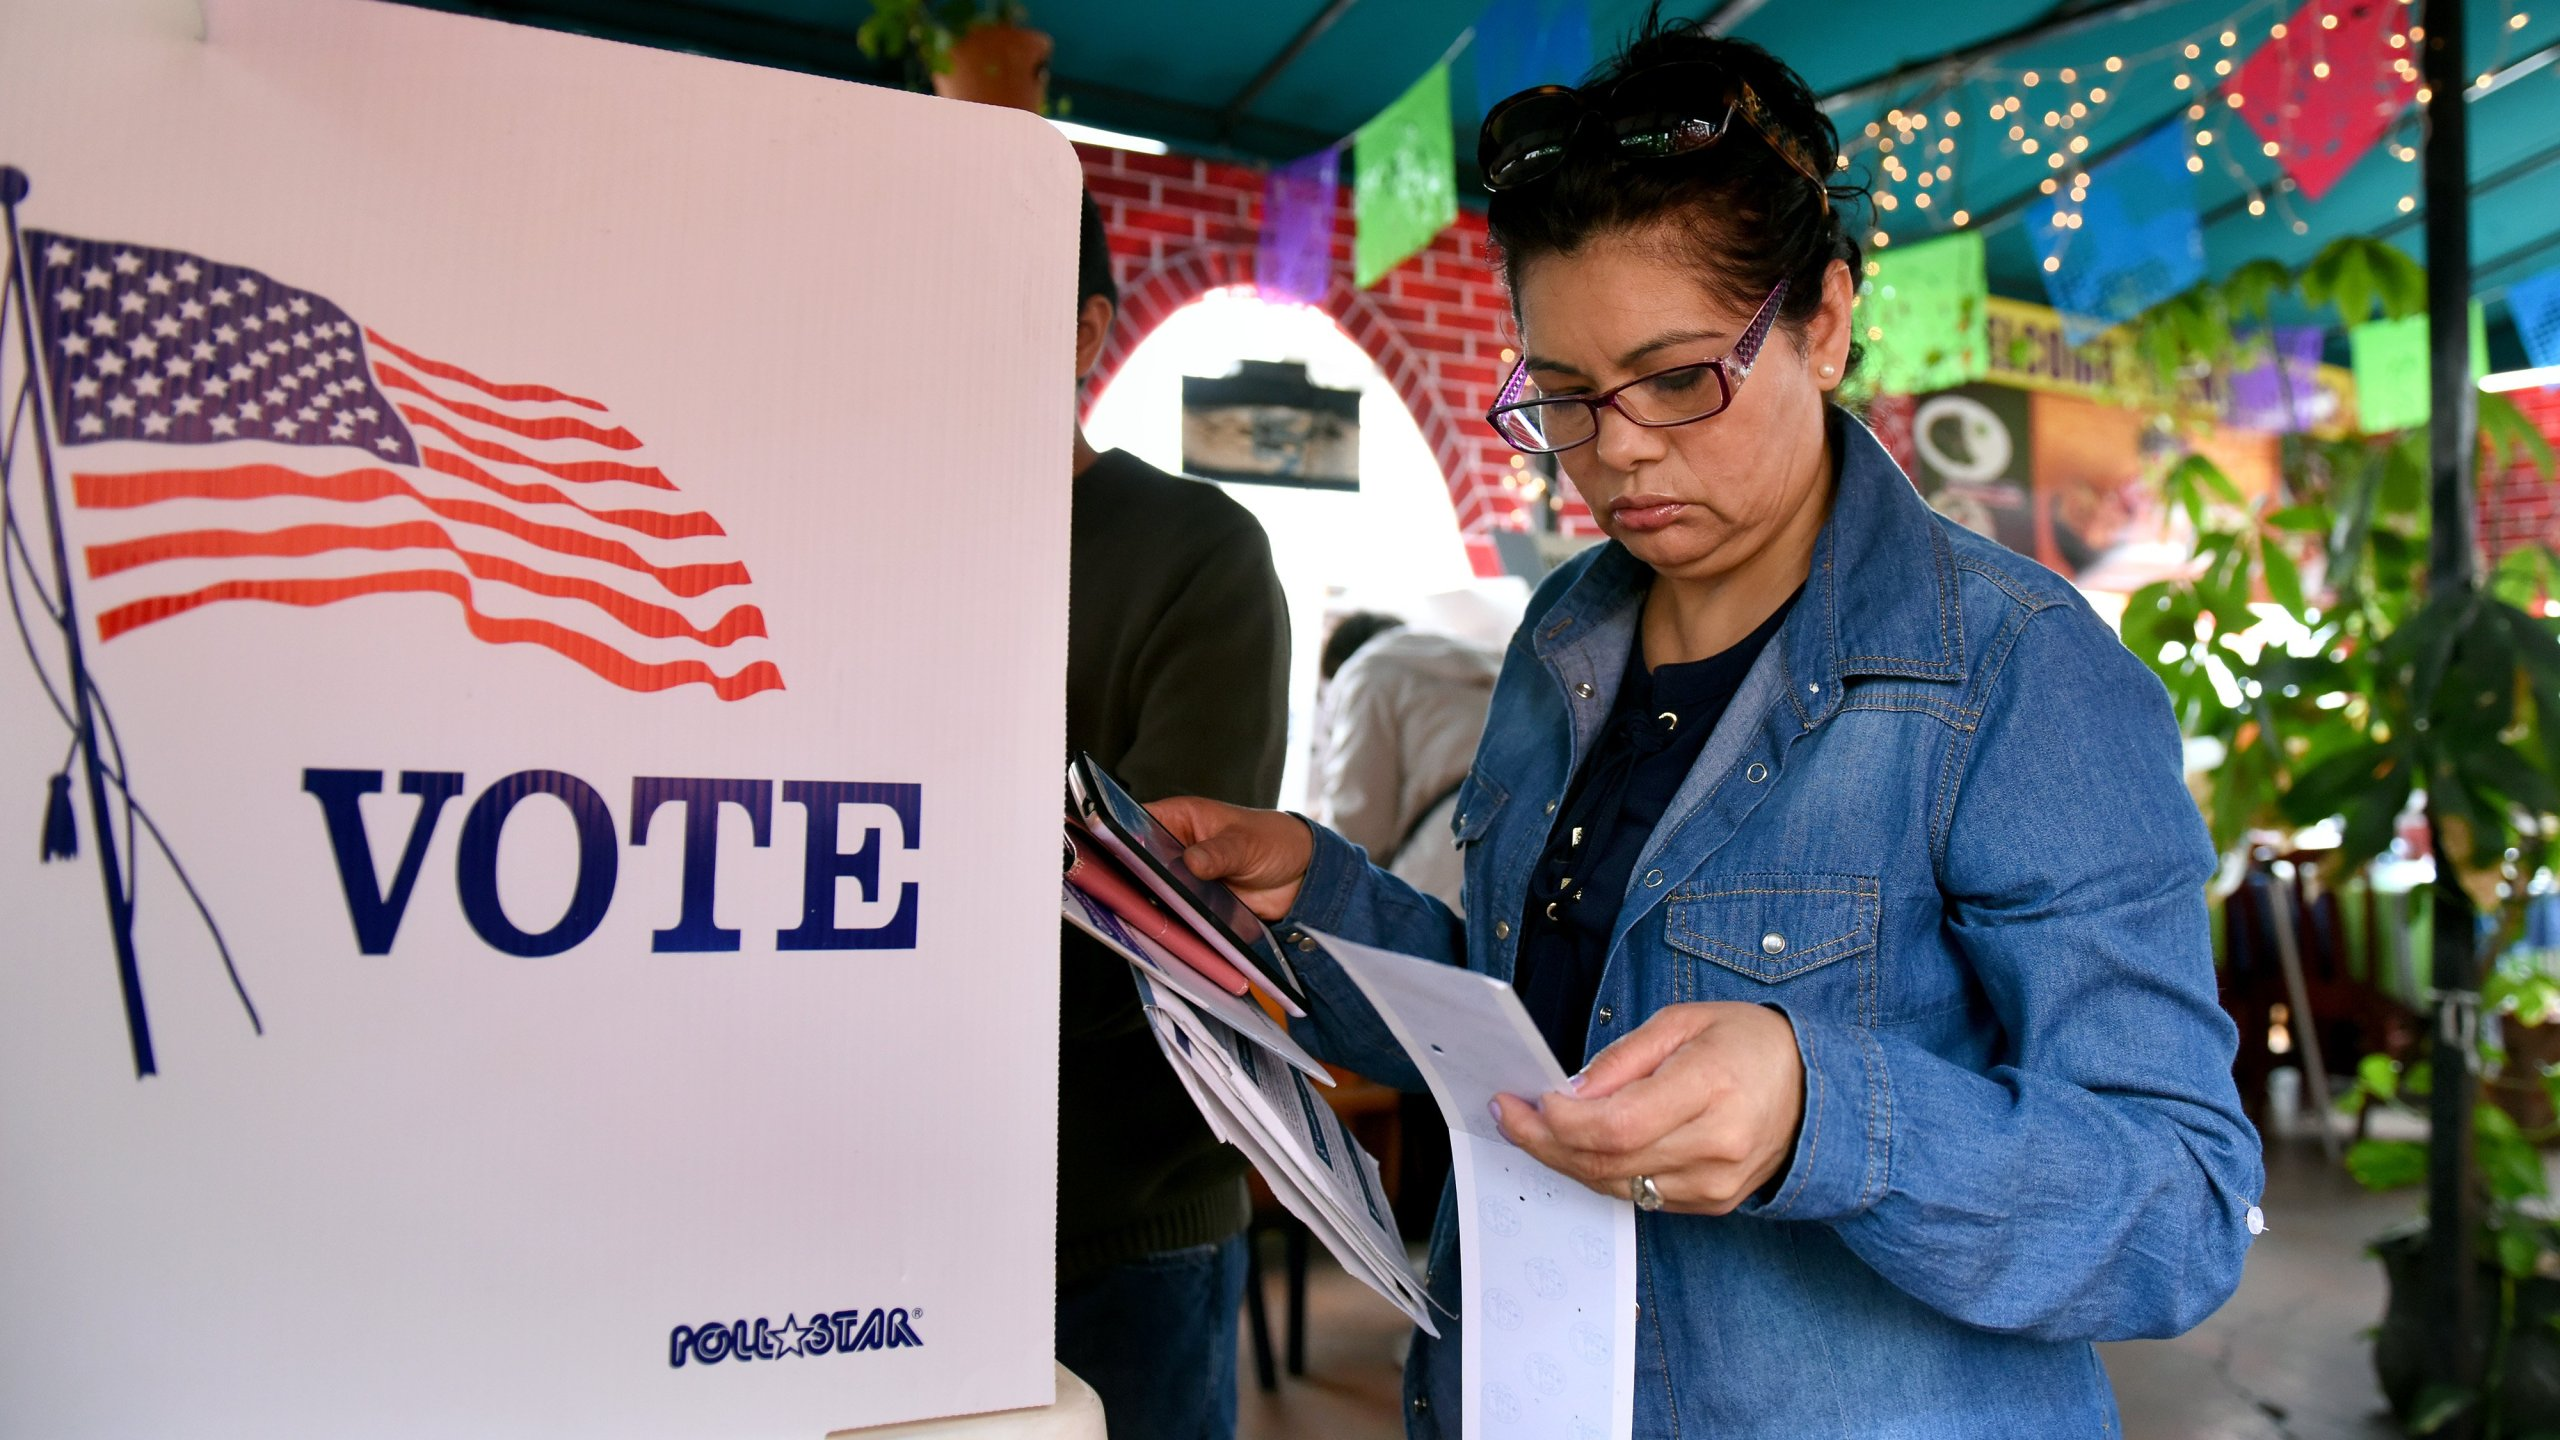 Rosa Ayala checks her ballot after voting in the June 7, 2016, presidential primary at Sabores de Oaxaca, a Mexican restaurant in Mid-City Los Angeles. (Credit: Michael Owen Baker / AFP / Getty Images)